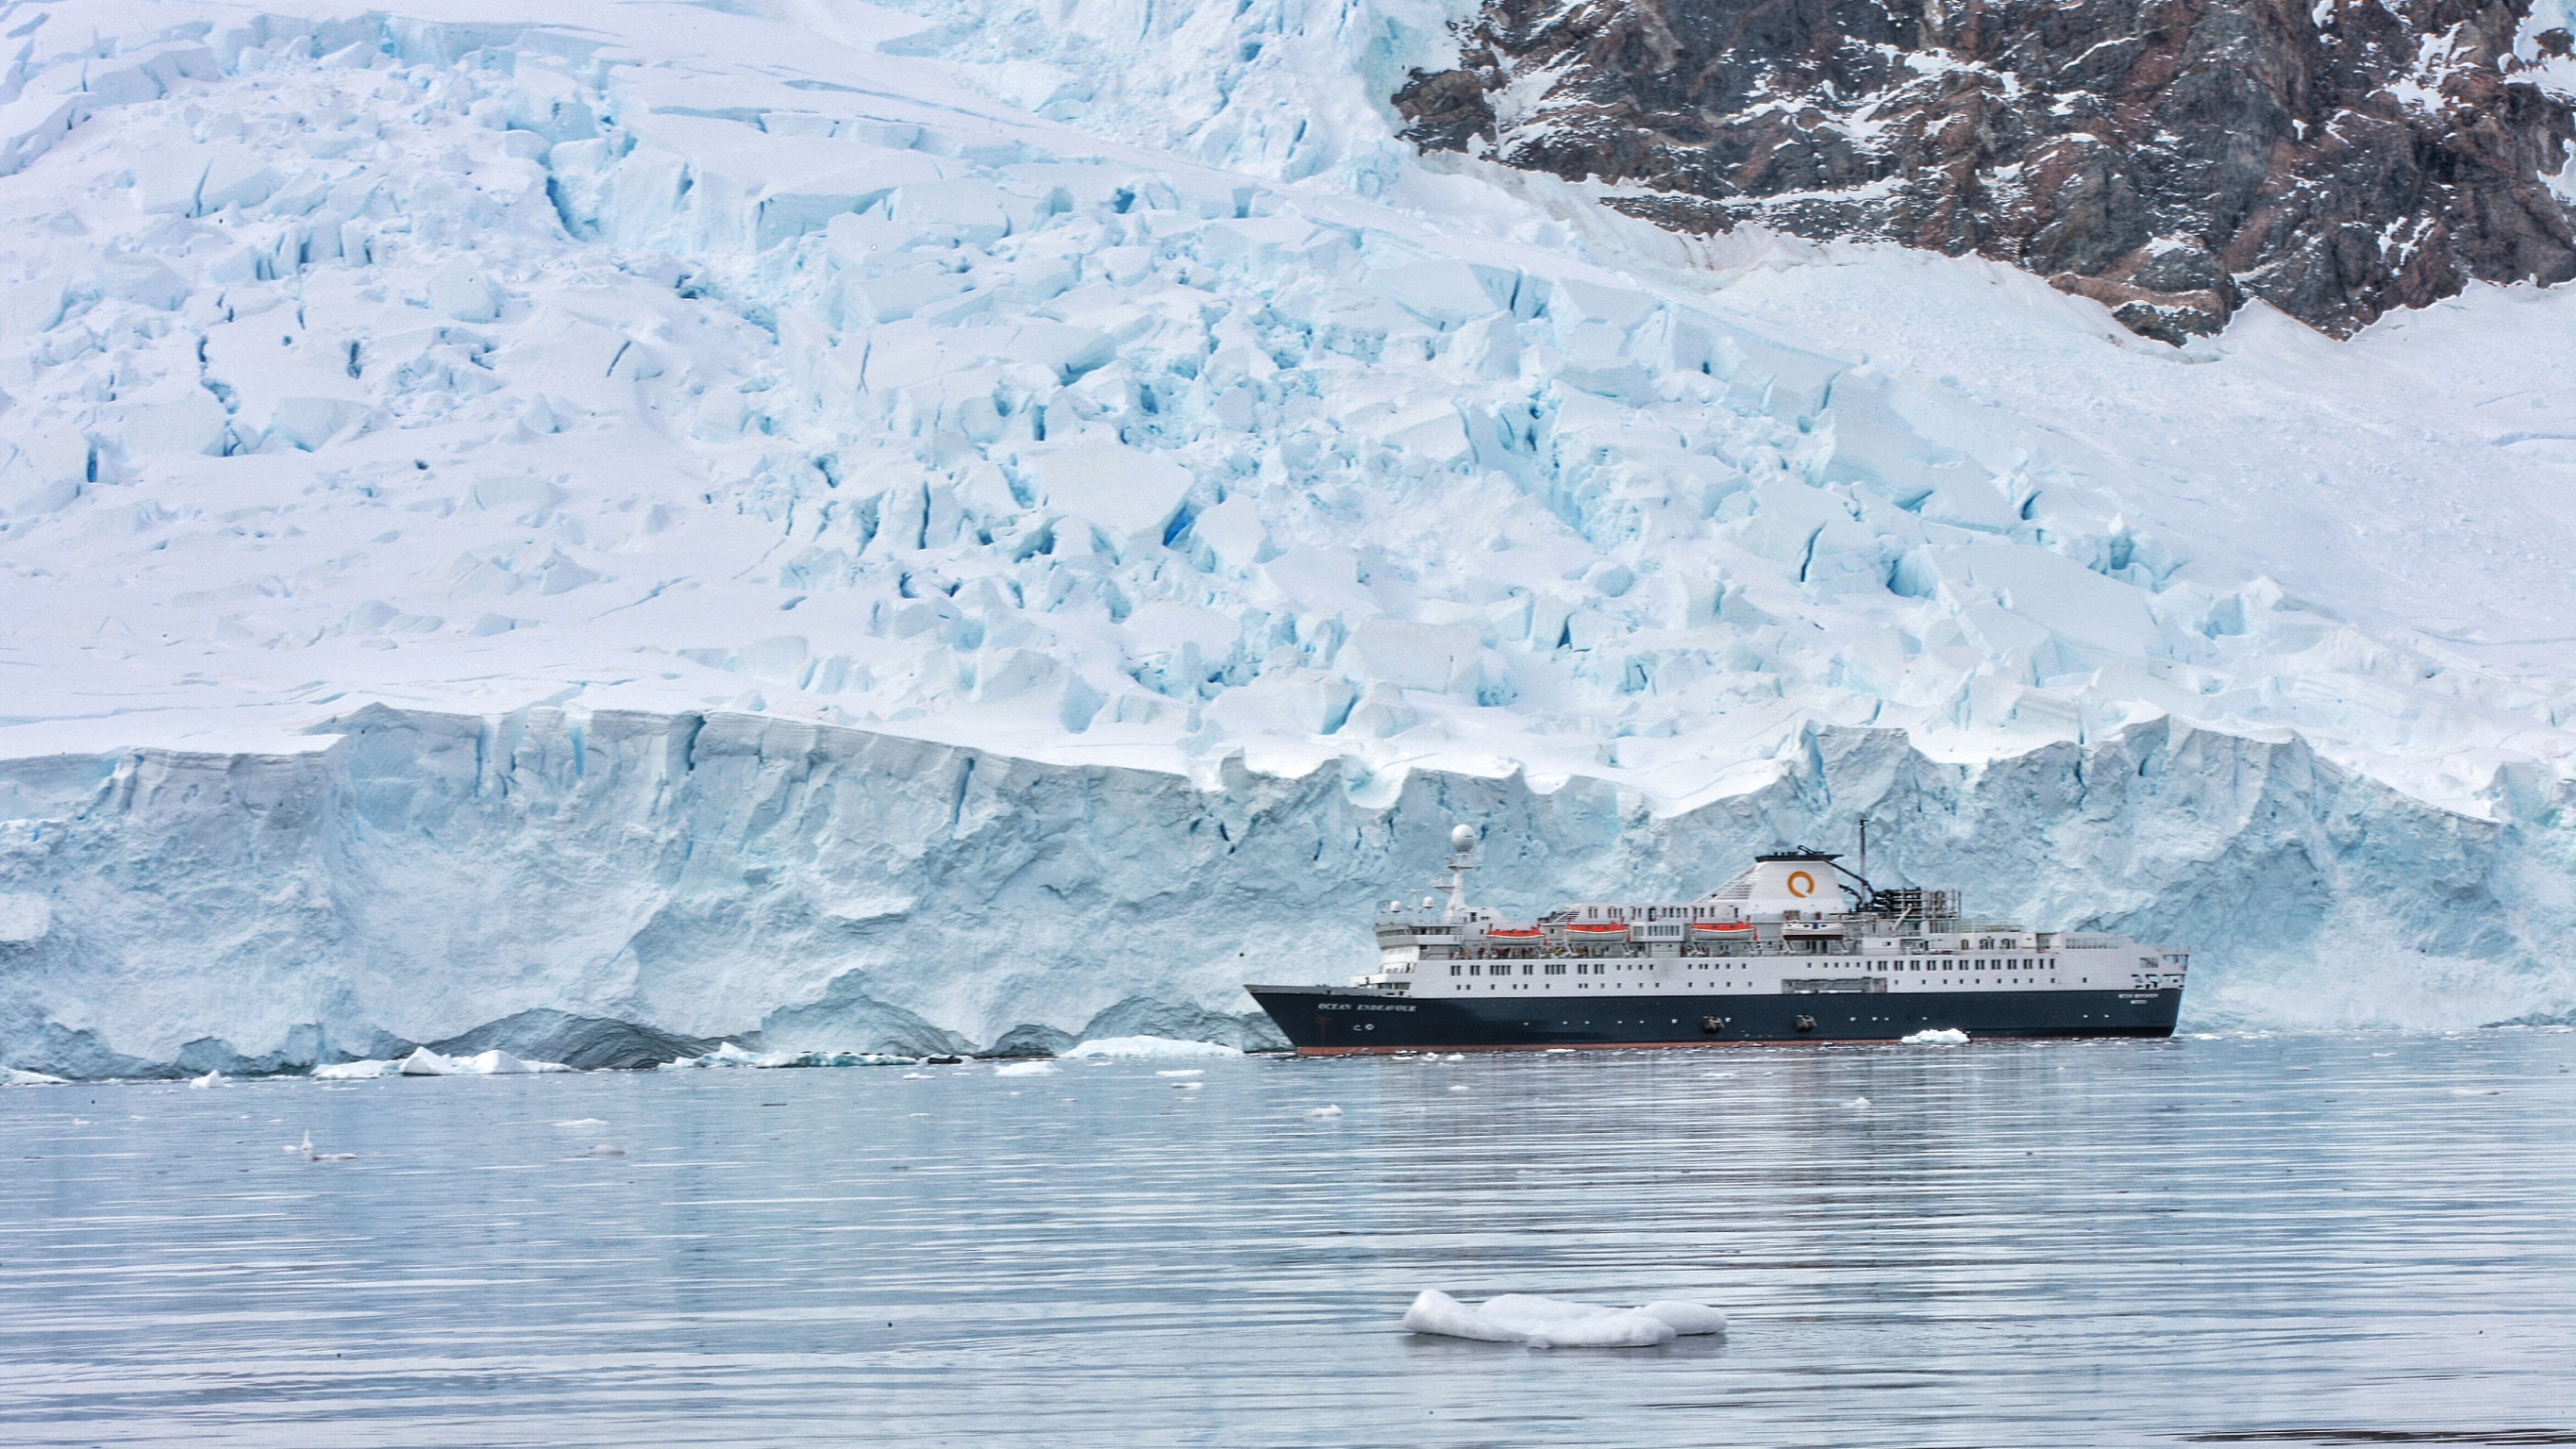 ������� Quark Expeditions ������� Ocean Endeavour �����ϼ�+�����Ĺ�31�� 2017��1��15���Ϻ����� ���߱��:7771711501